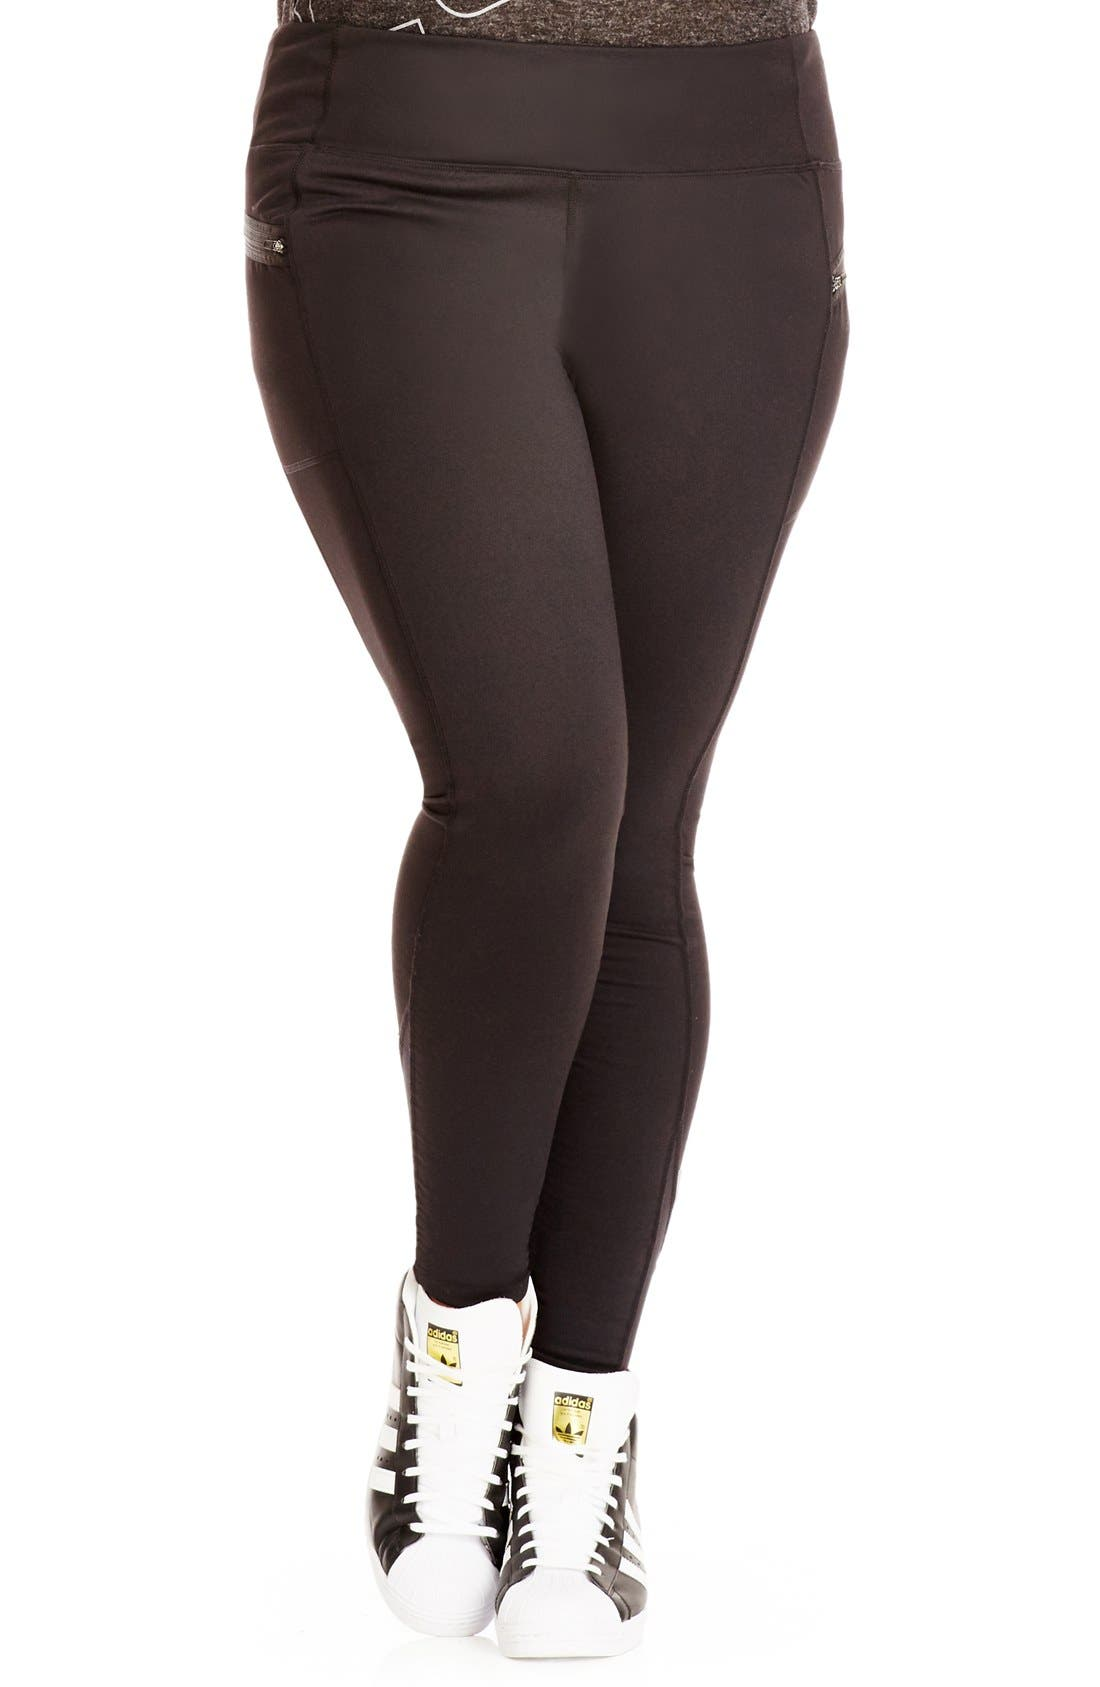 CITY CHIC Full Length Sport Leggings